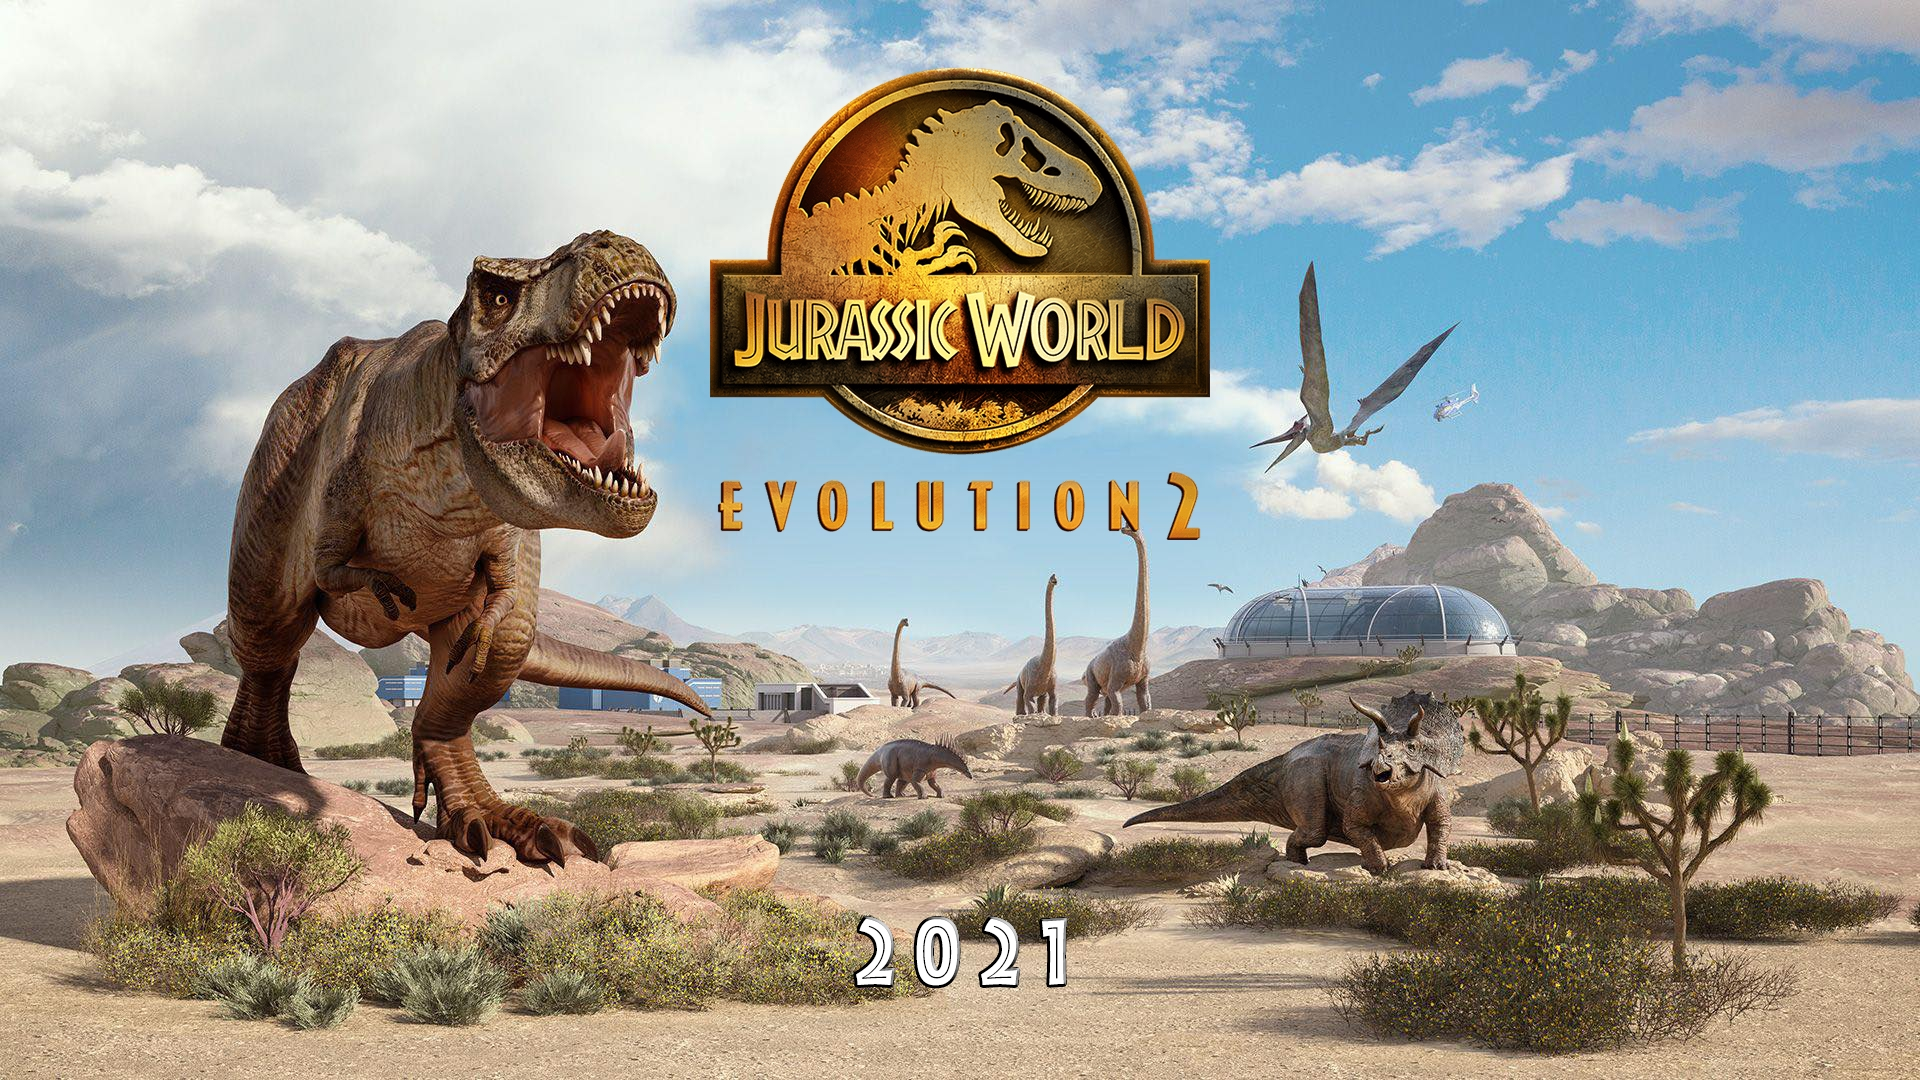 'Jurassic World: Evolution 2' Announced At Summer Game Fest – Coming in 2021!